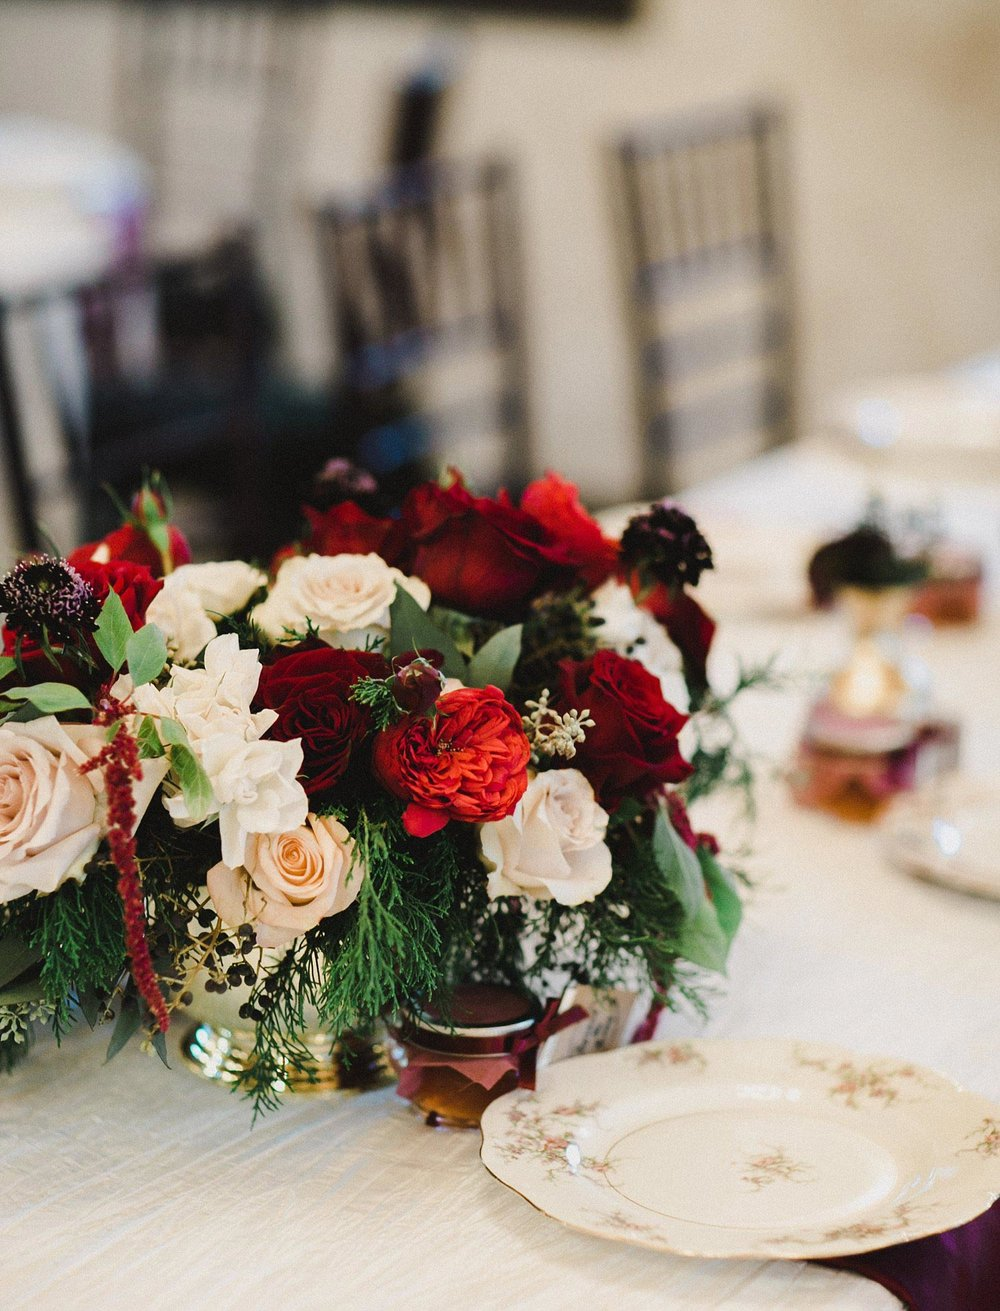 Hollow Hill Farm Event Center Wedding floral centerpiece with red, burgundy and cream roses